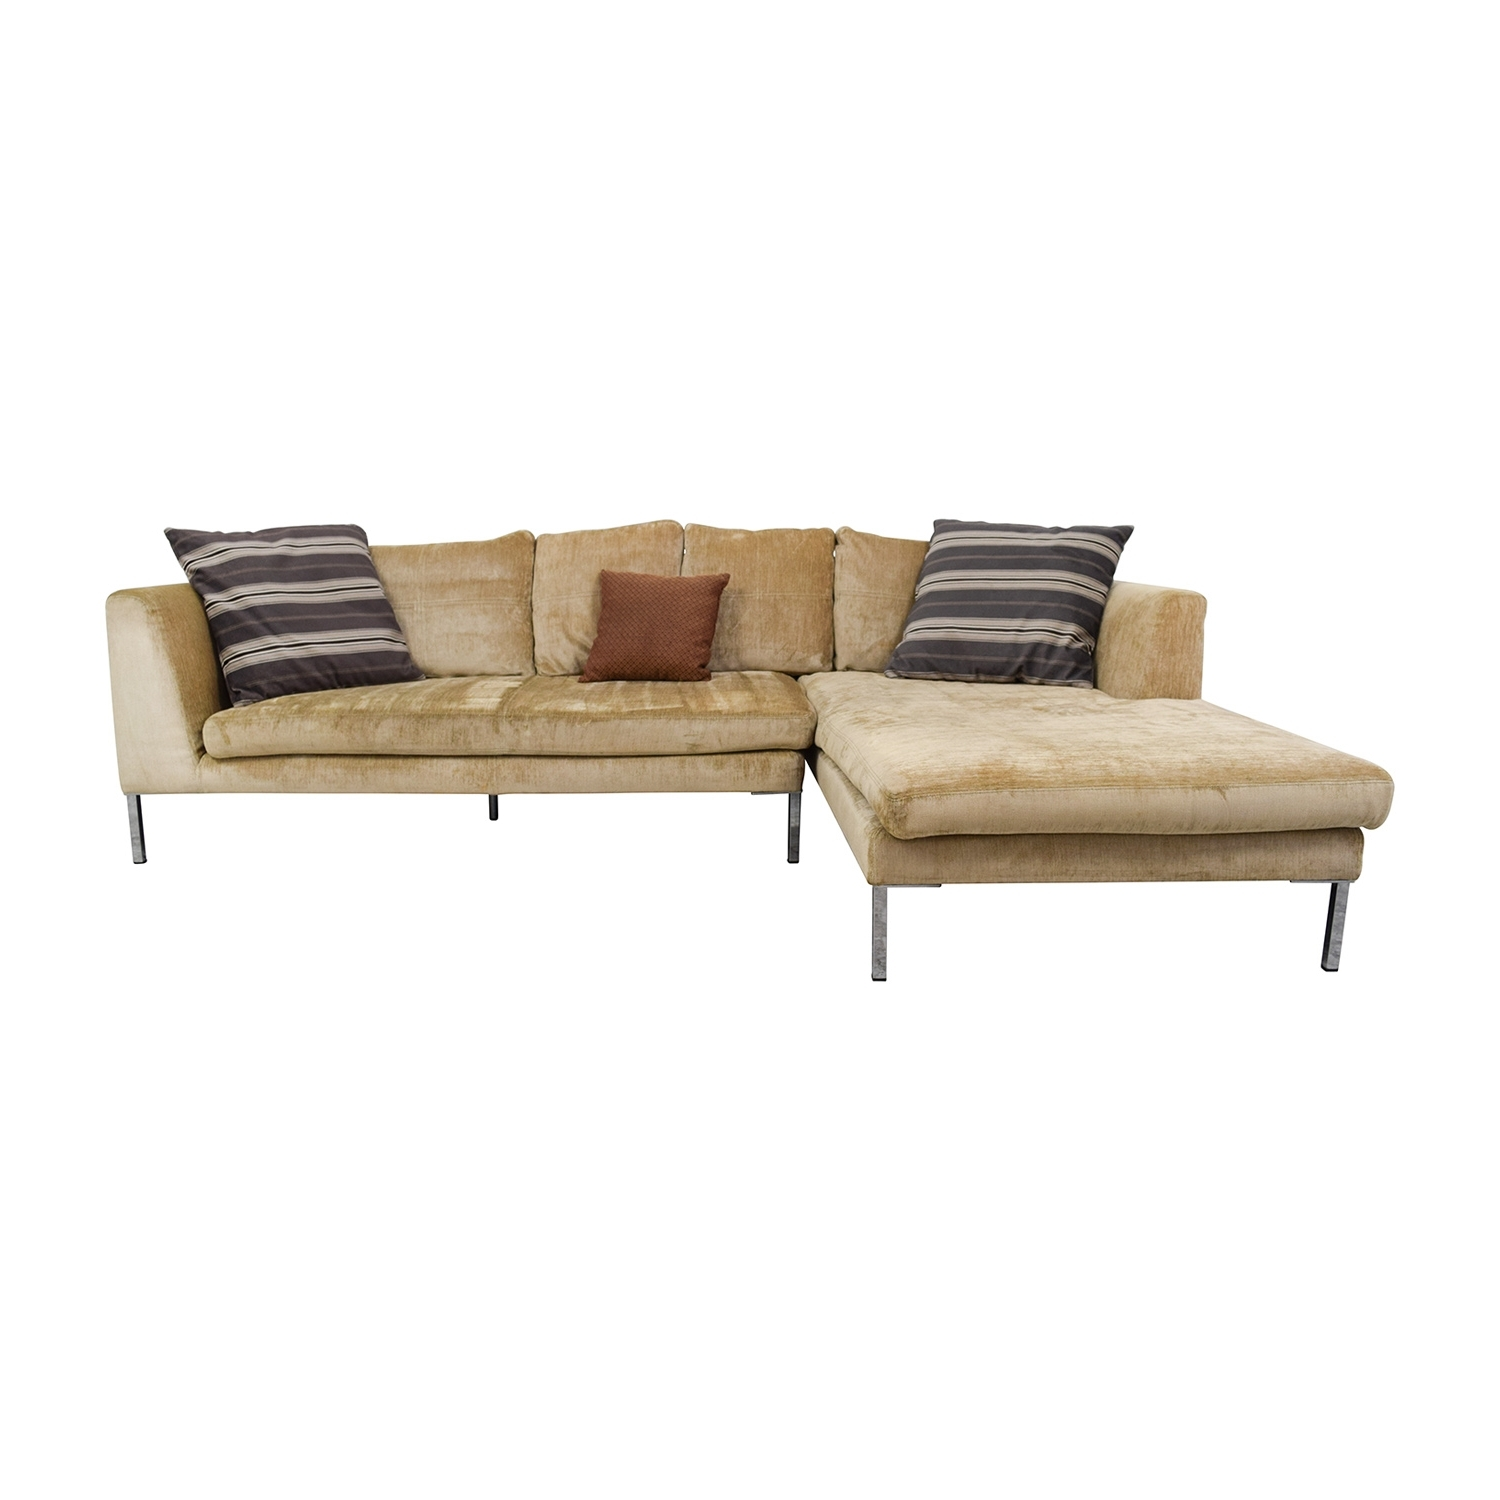 [%59% Off – Brown Sectional With Ottoman / Sofas Inside Widely Used Mobilia Sectional Sofas|mobilia Sectional Sofas For Most Up To Date 59% Off – Brown Sectional With Ottoman / Sofas|favorite Mobilia Sectional Sofas Pertaining To 59% Off – Brown Sectional With Ottoman / Sofas|most Popular 59% Off – Brown Sectional With Ottoman / Sofas Regarding Mobilia Sectional Sofas%] (View 13 of 20)